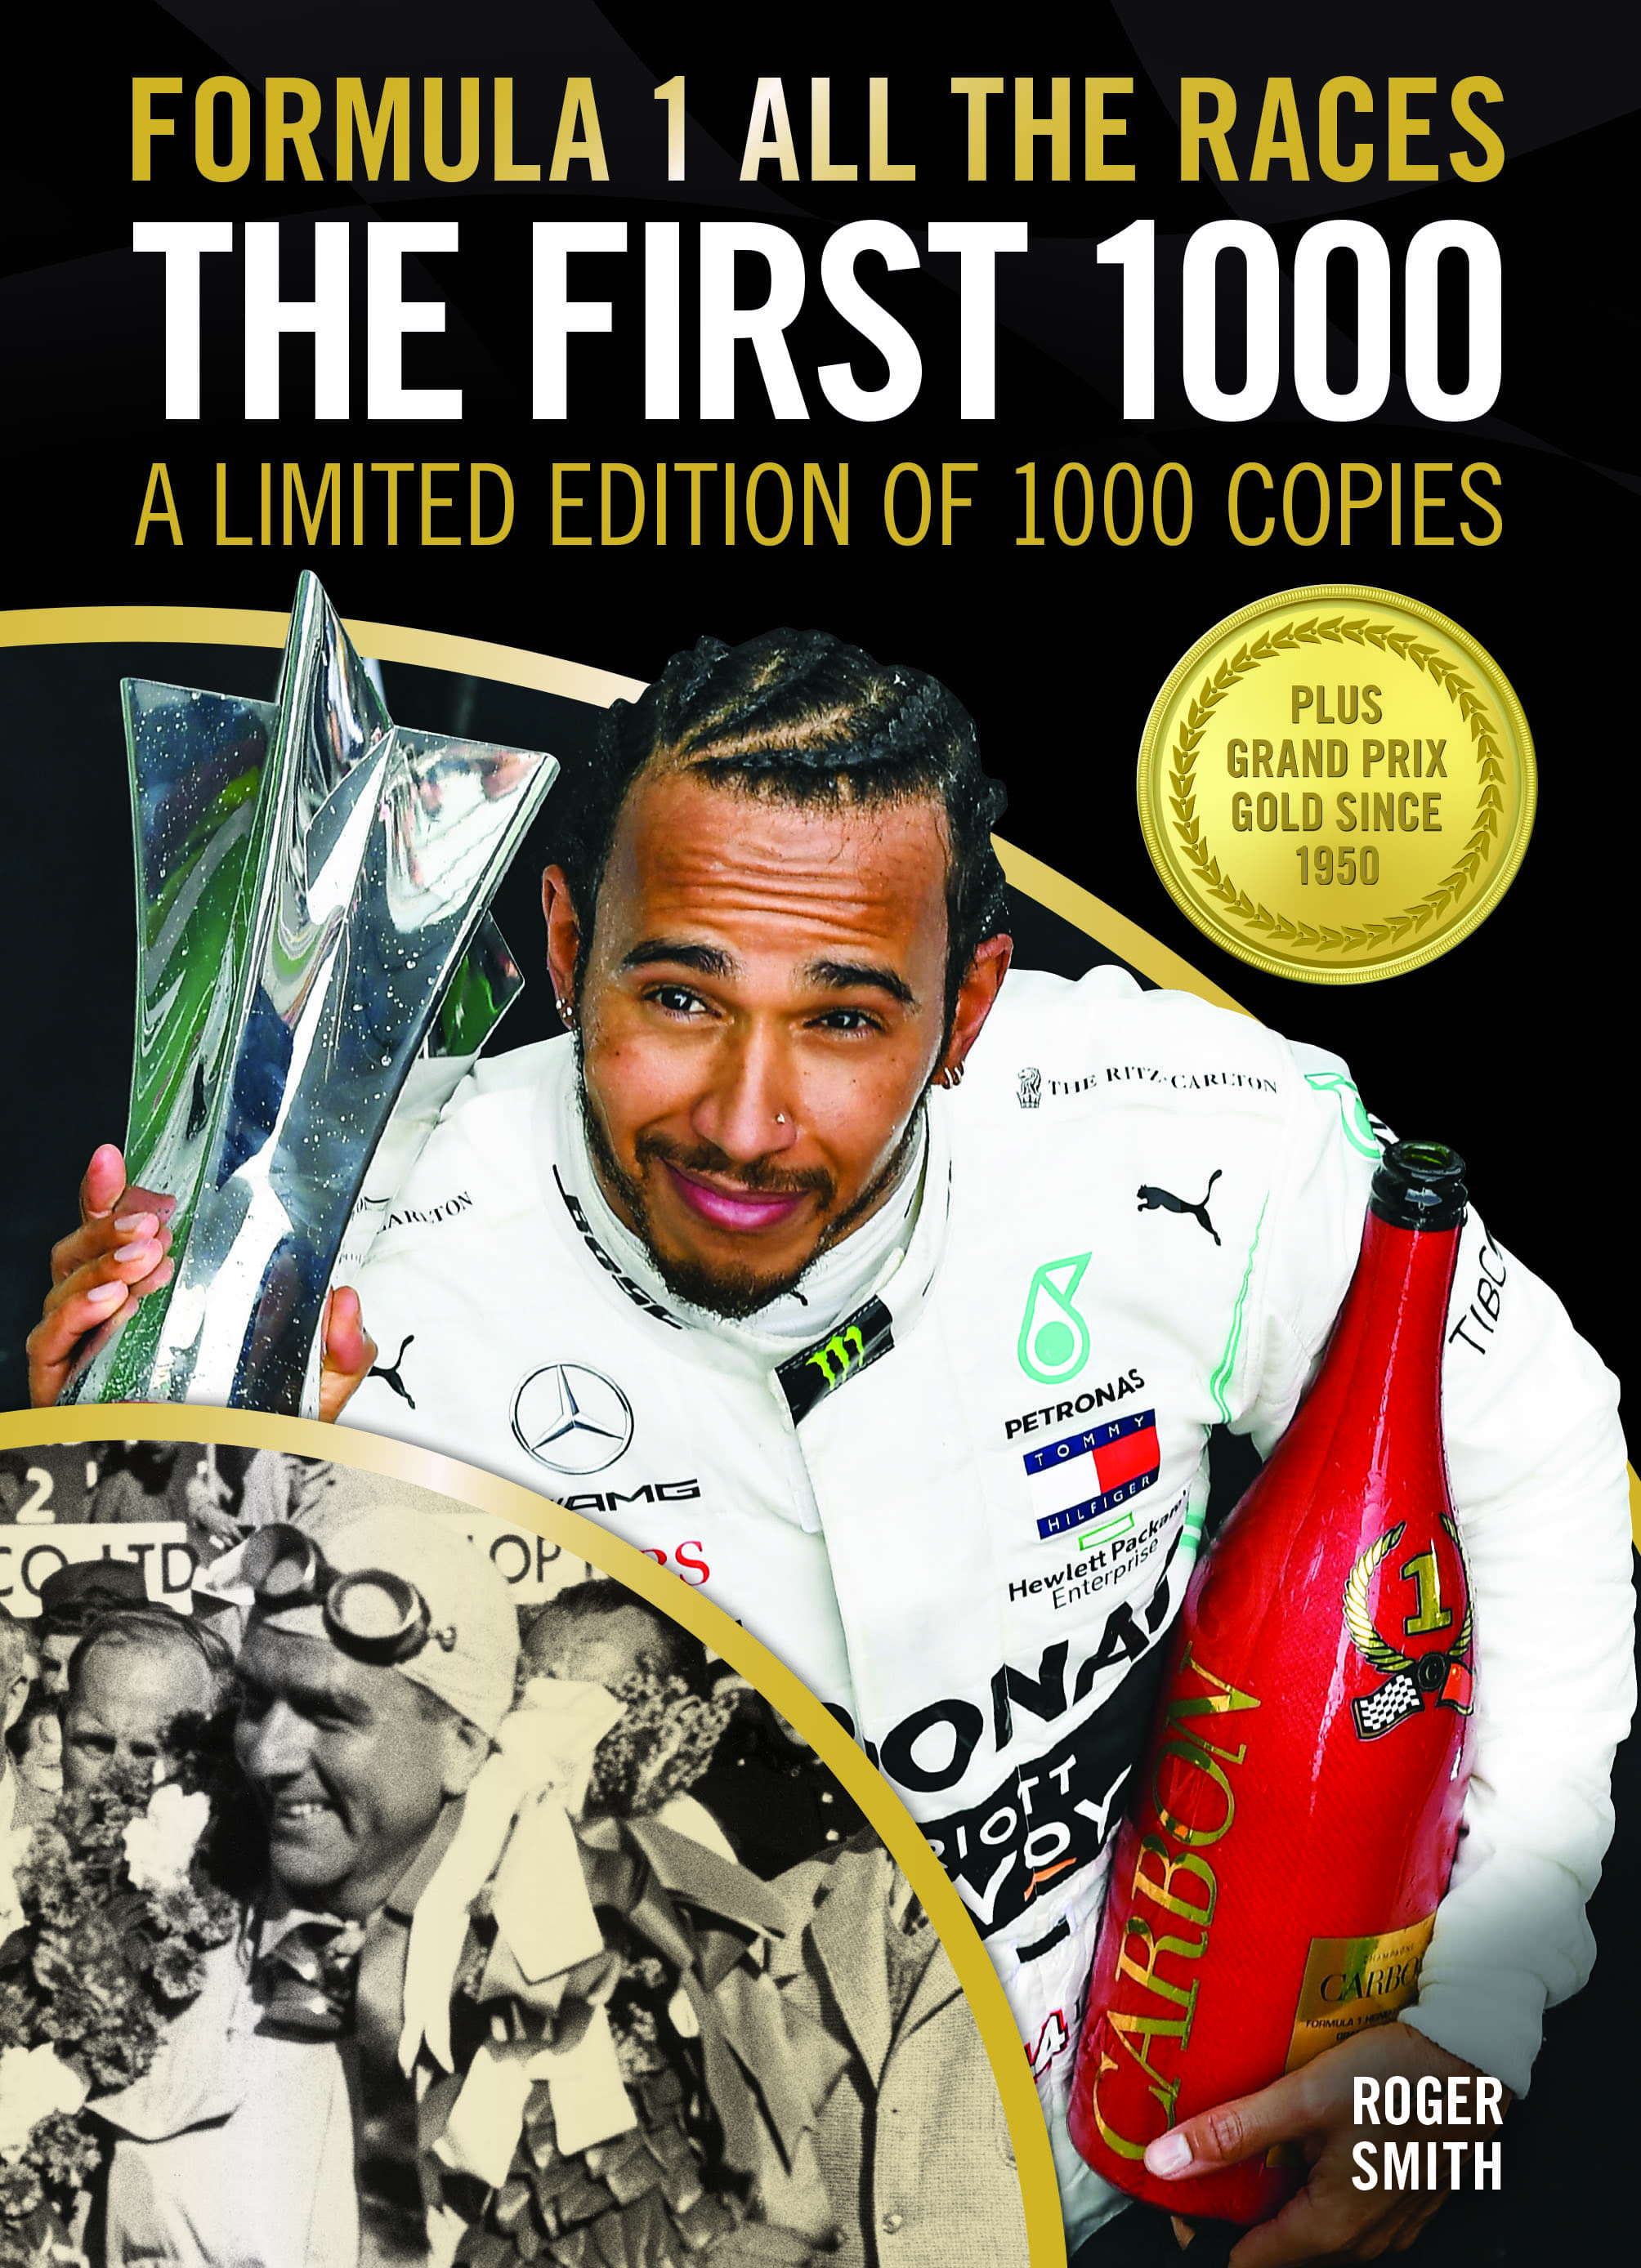 Formula 1 All The Races - The First 1000 - A limited edition of 1000 individually numbered copies cover